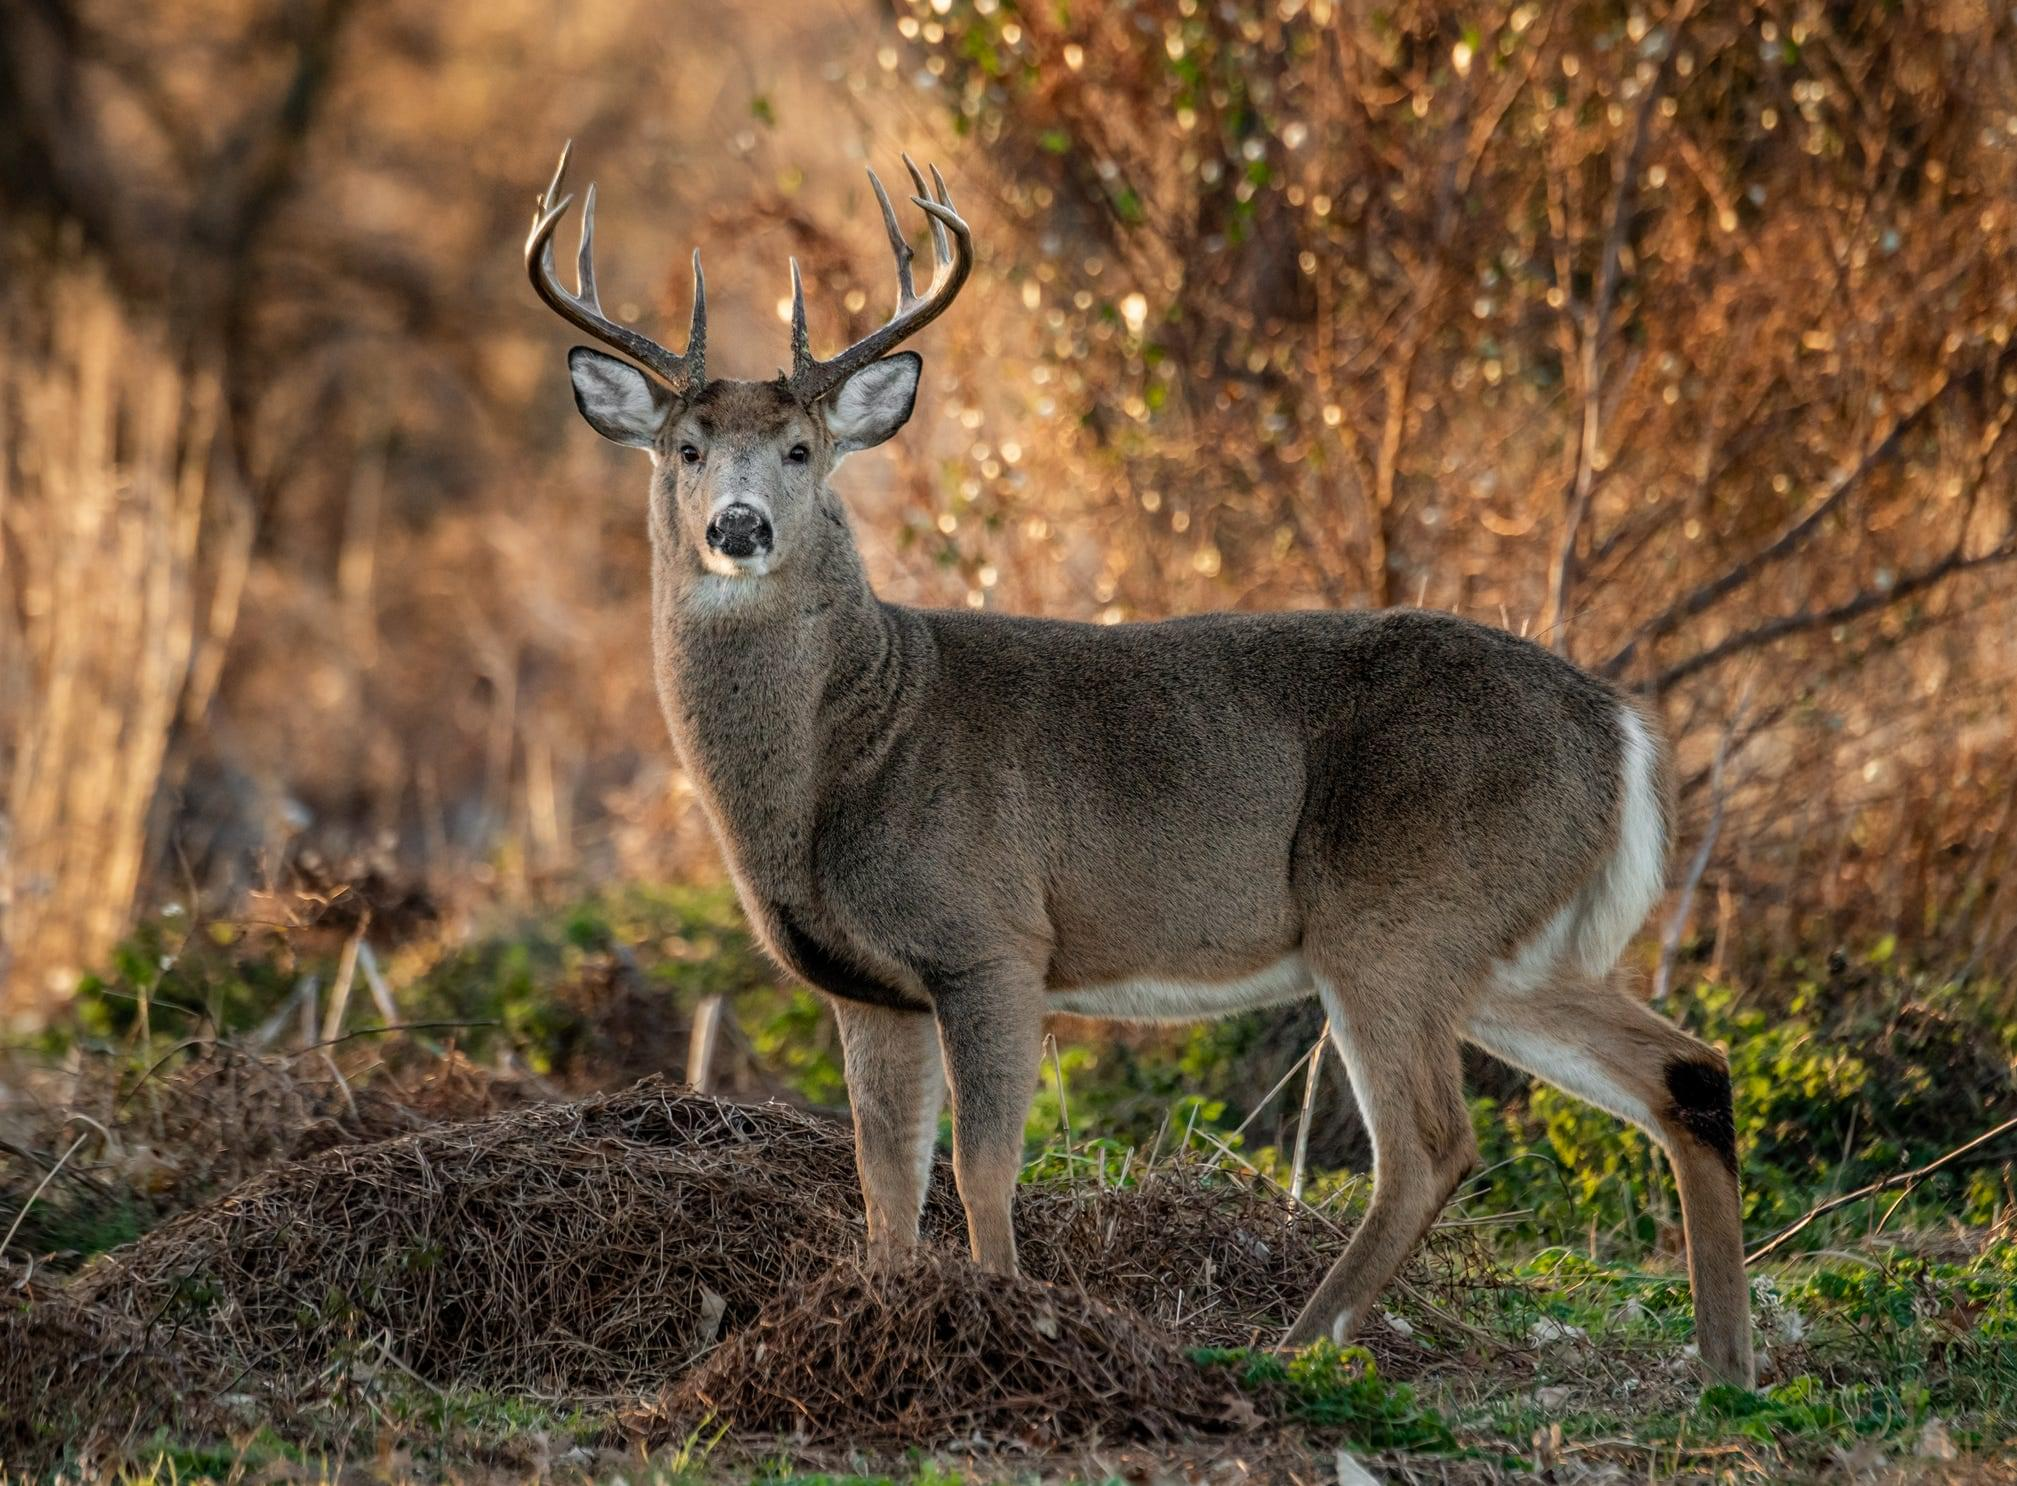 Deer in Two Tennessee Counties Test Positive for CWD